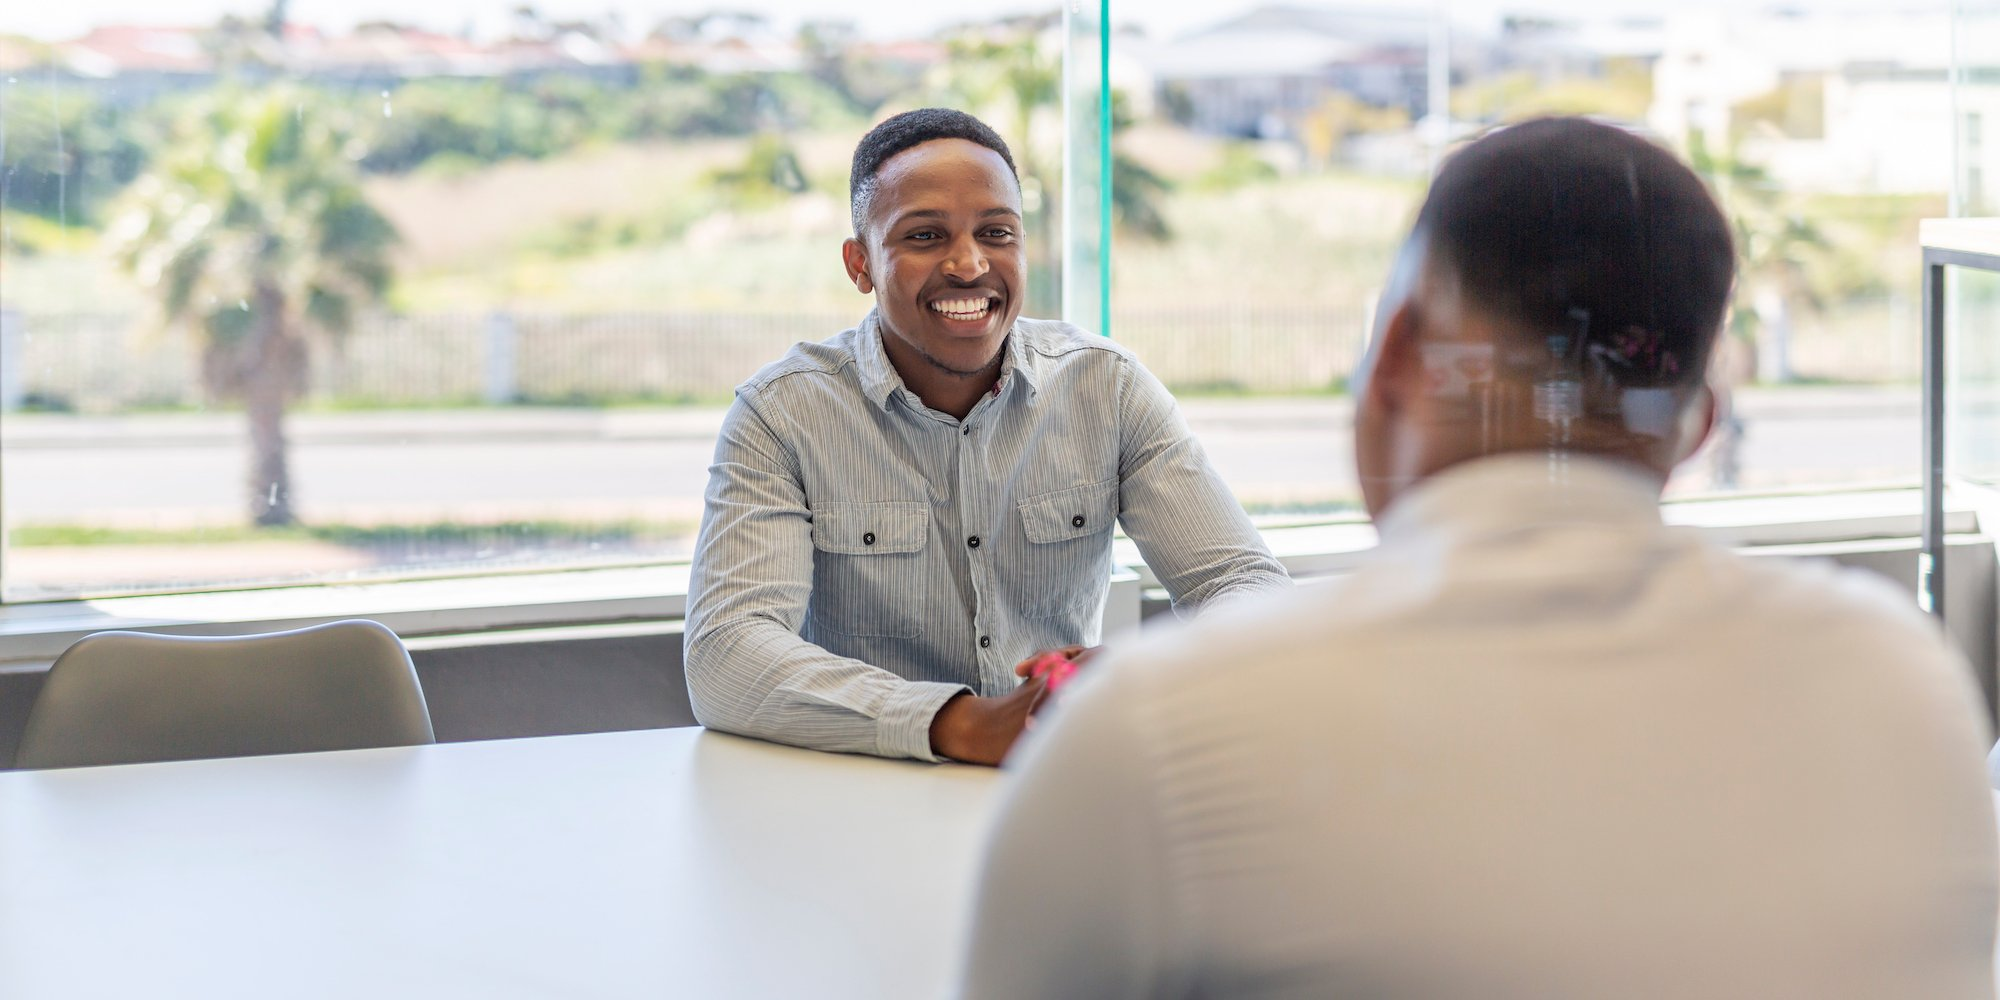 These 7 Interview Skills Will Help You Stand Out From the Pack